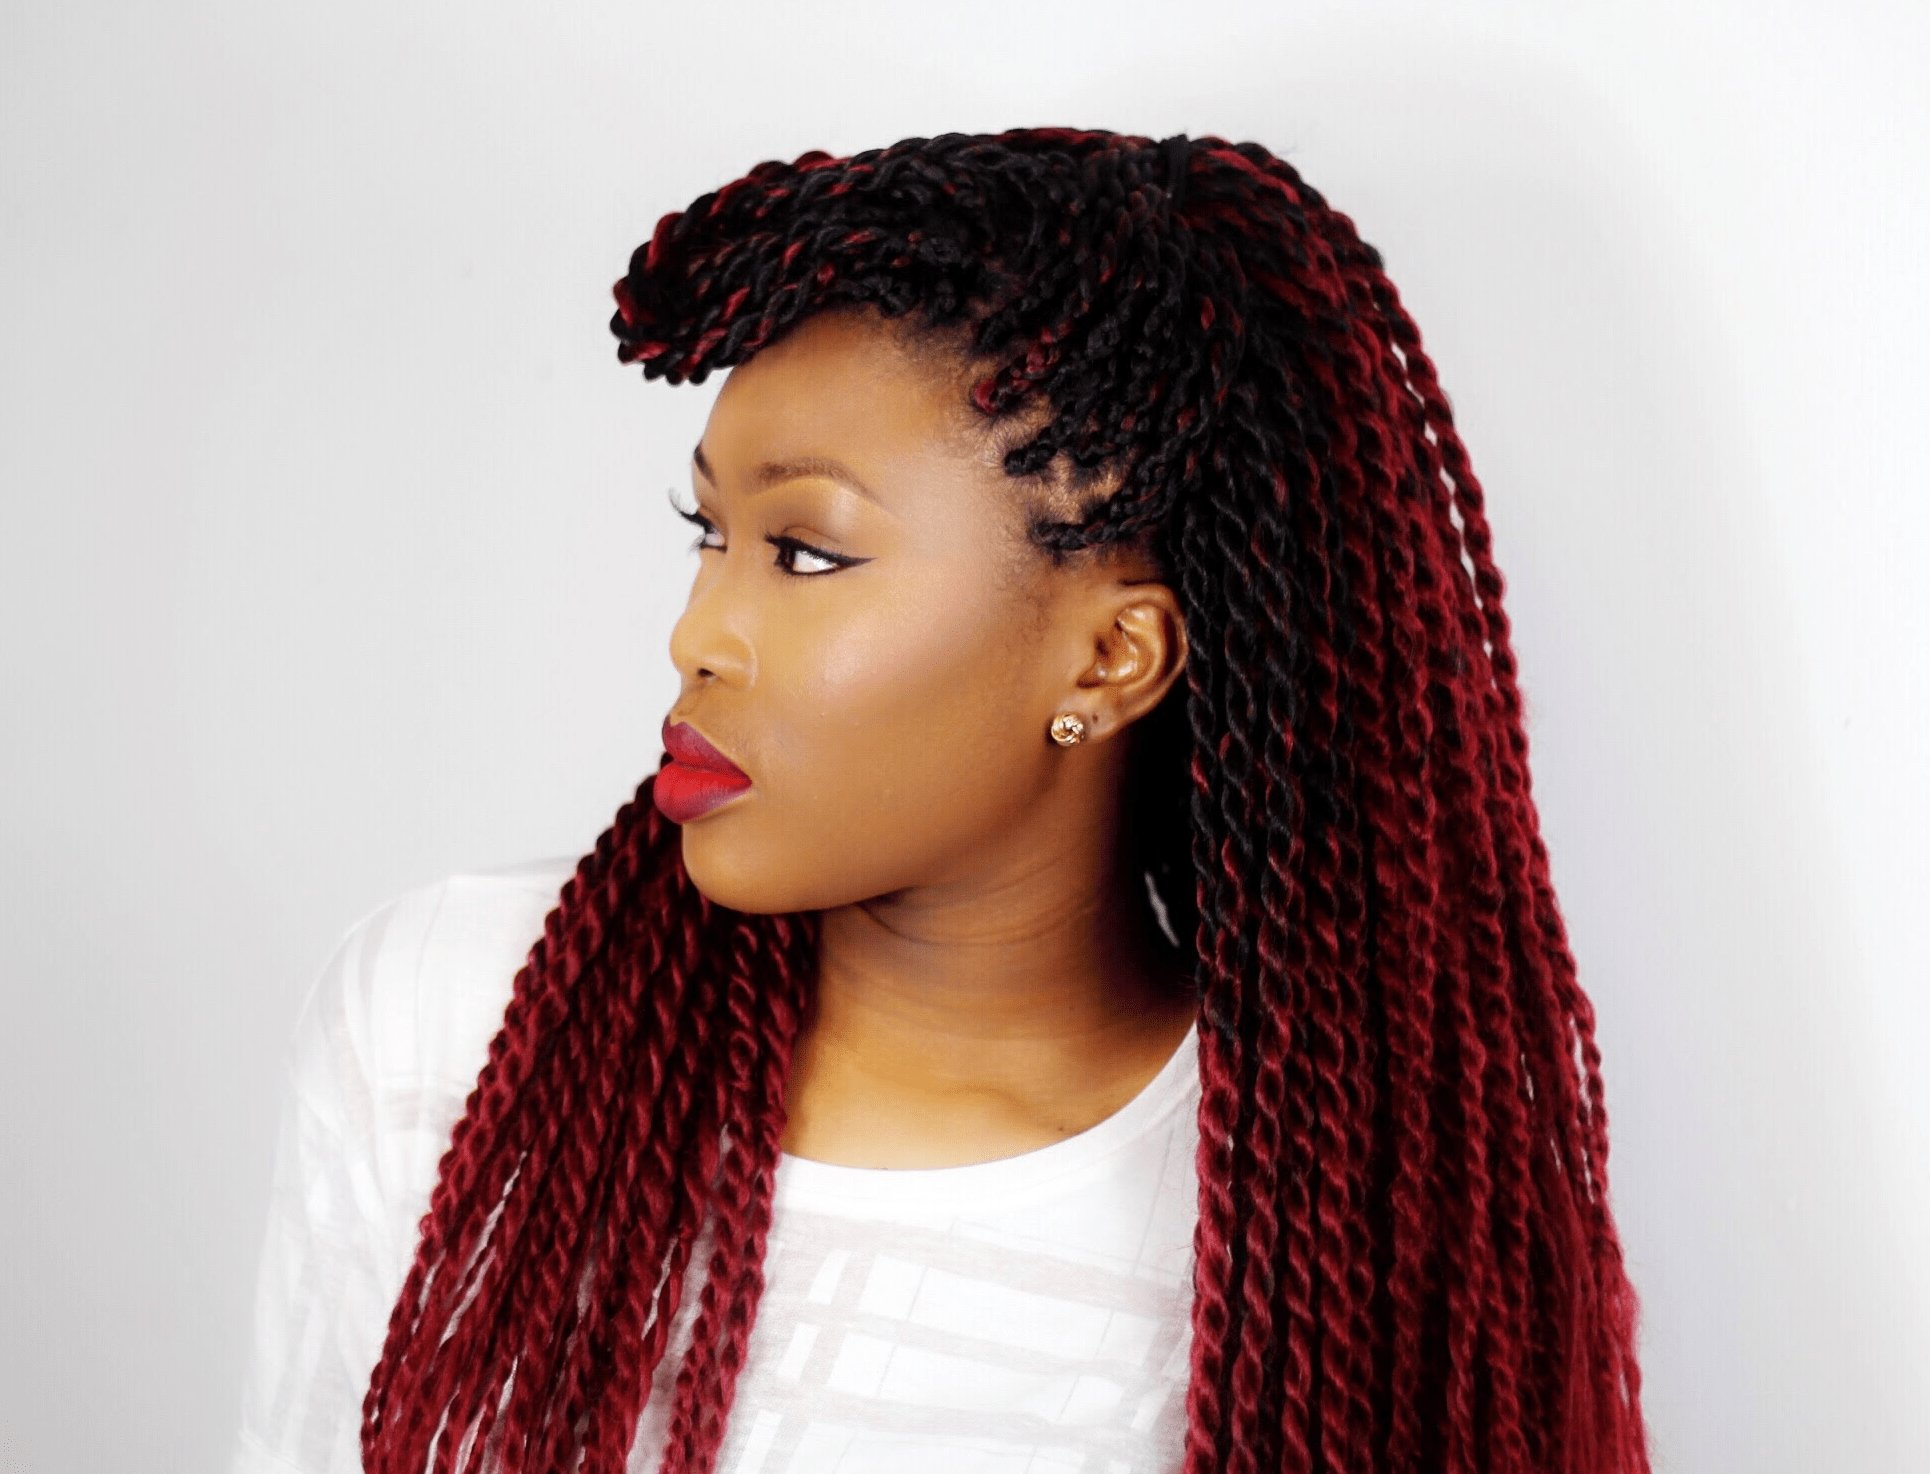 New 30 Protective High Shine Senegalese Twist Styles Ideas With Pictures